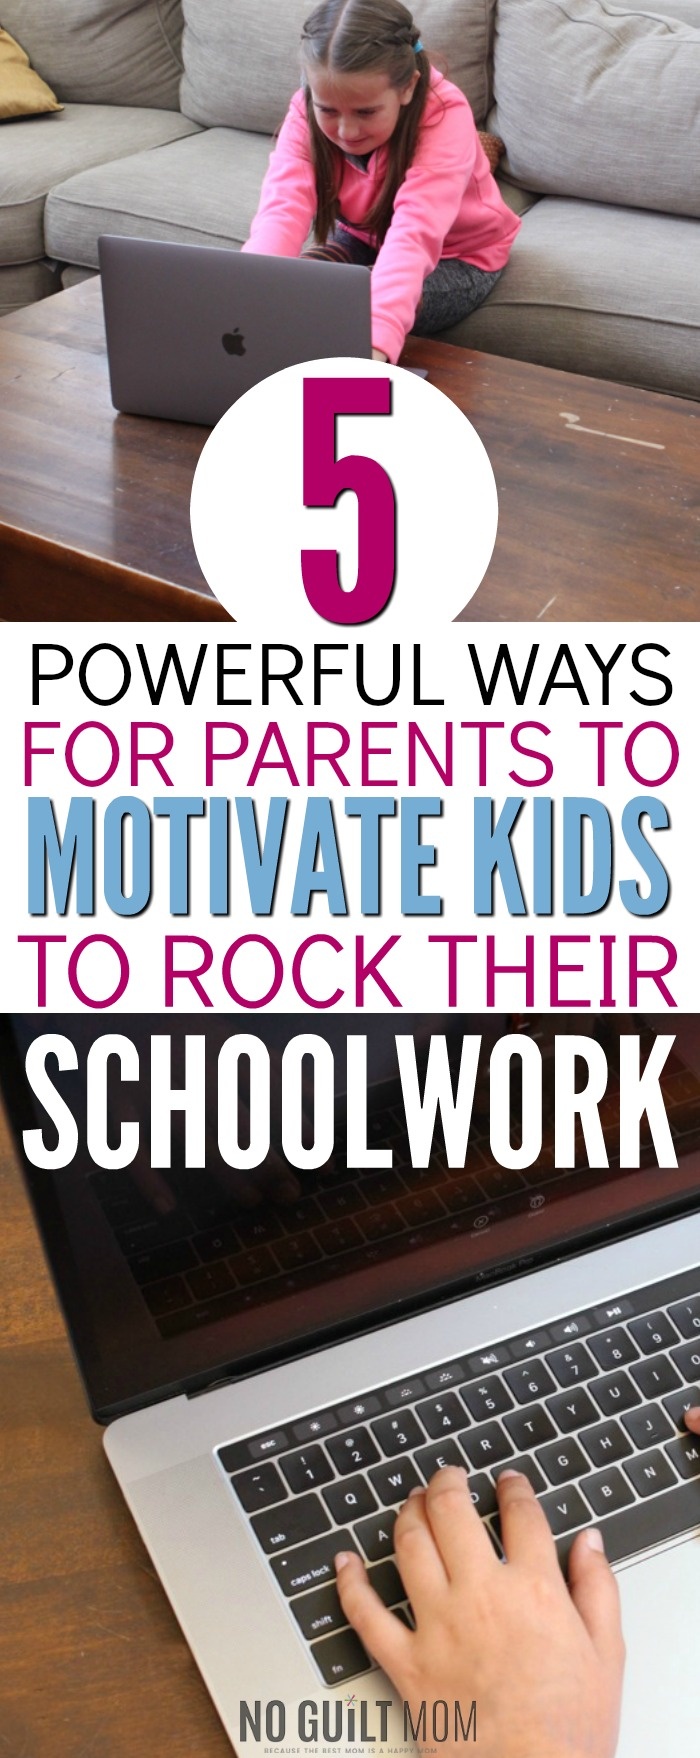 Motivating my child to do well in school feels so out of my control! But this shows me exactly how I can increase self motivation for my children as well as create internally motivated students. These positive parenting tips